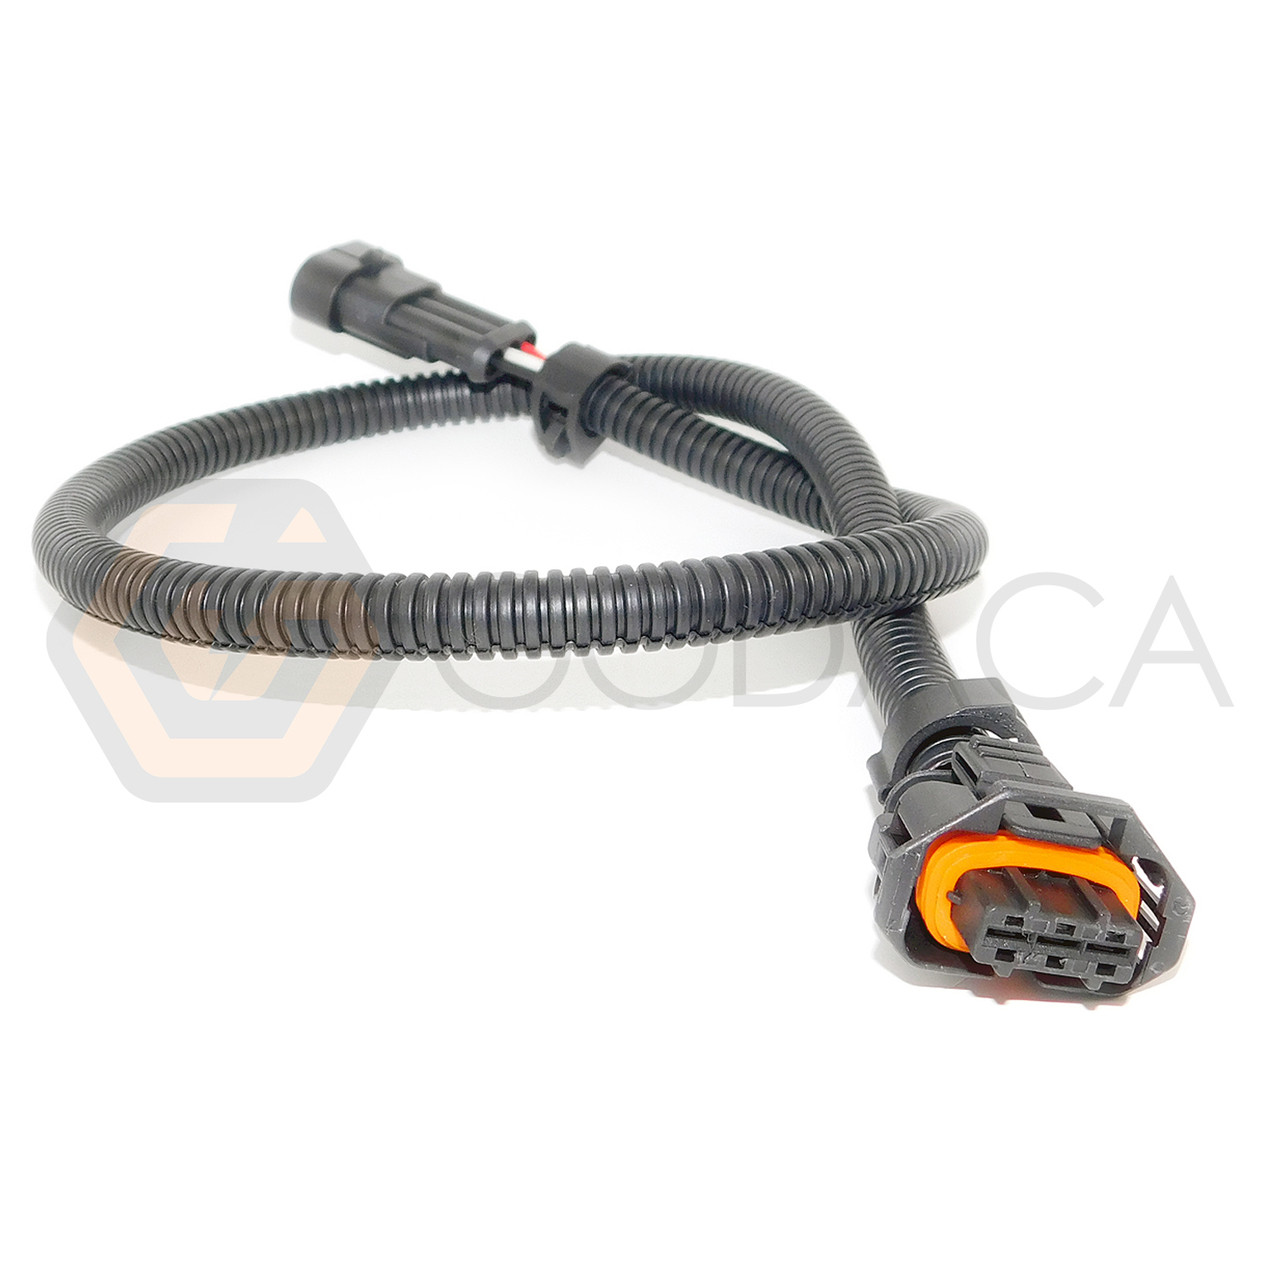 hight resolution of 1x wiring harness adapter for ls3 map sensor to ls2 ls1 map 24 godaca llc